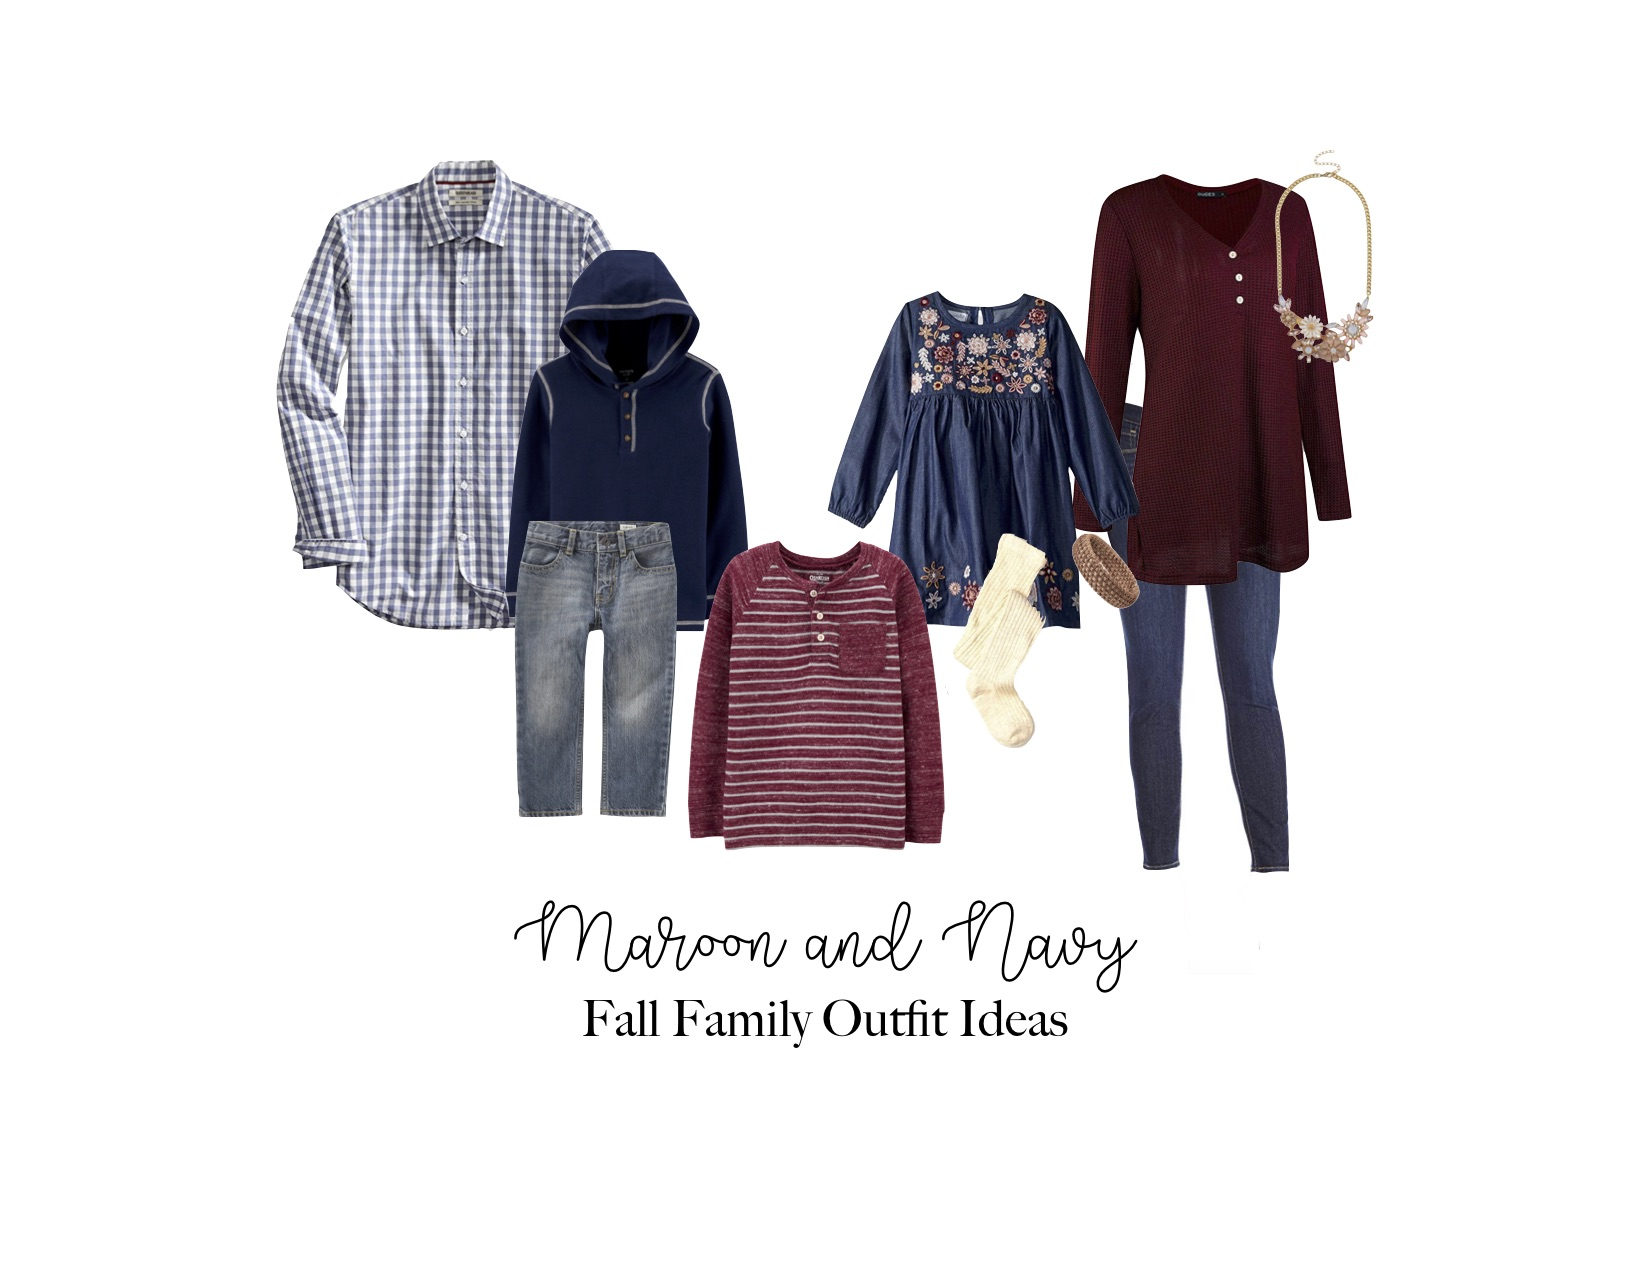 Maroon and Navy Fall Outfit Ideas